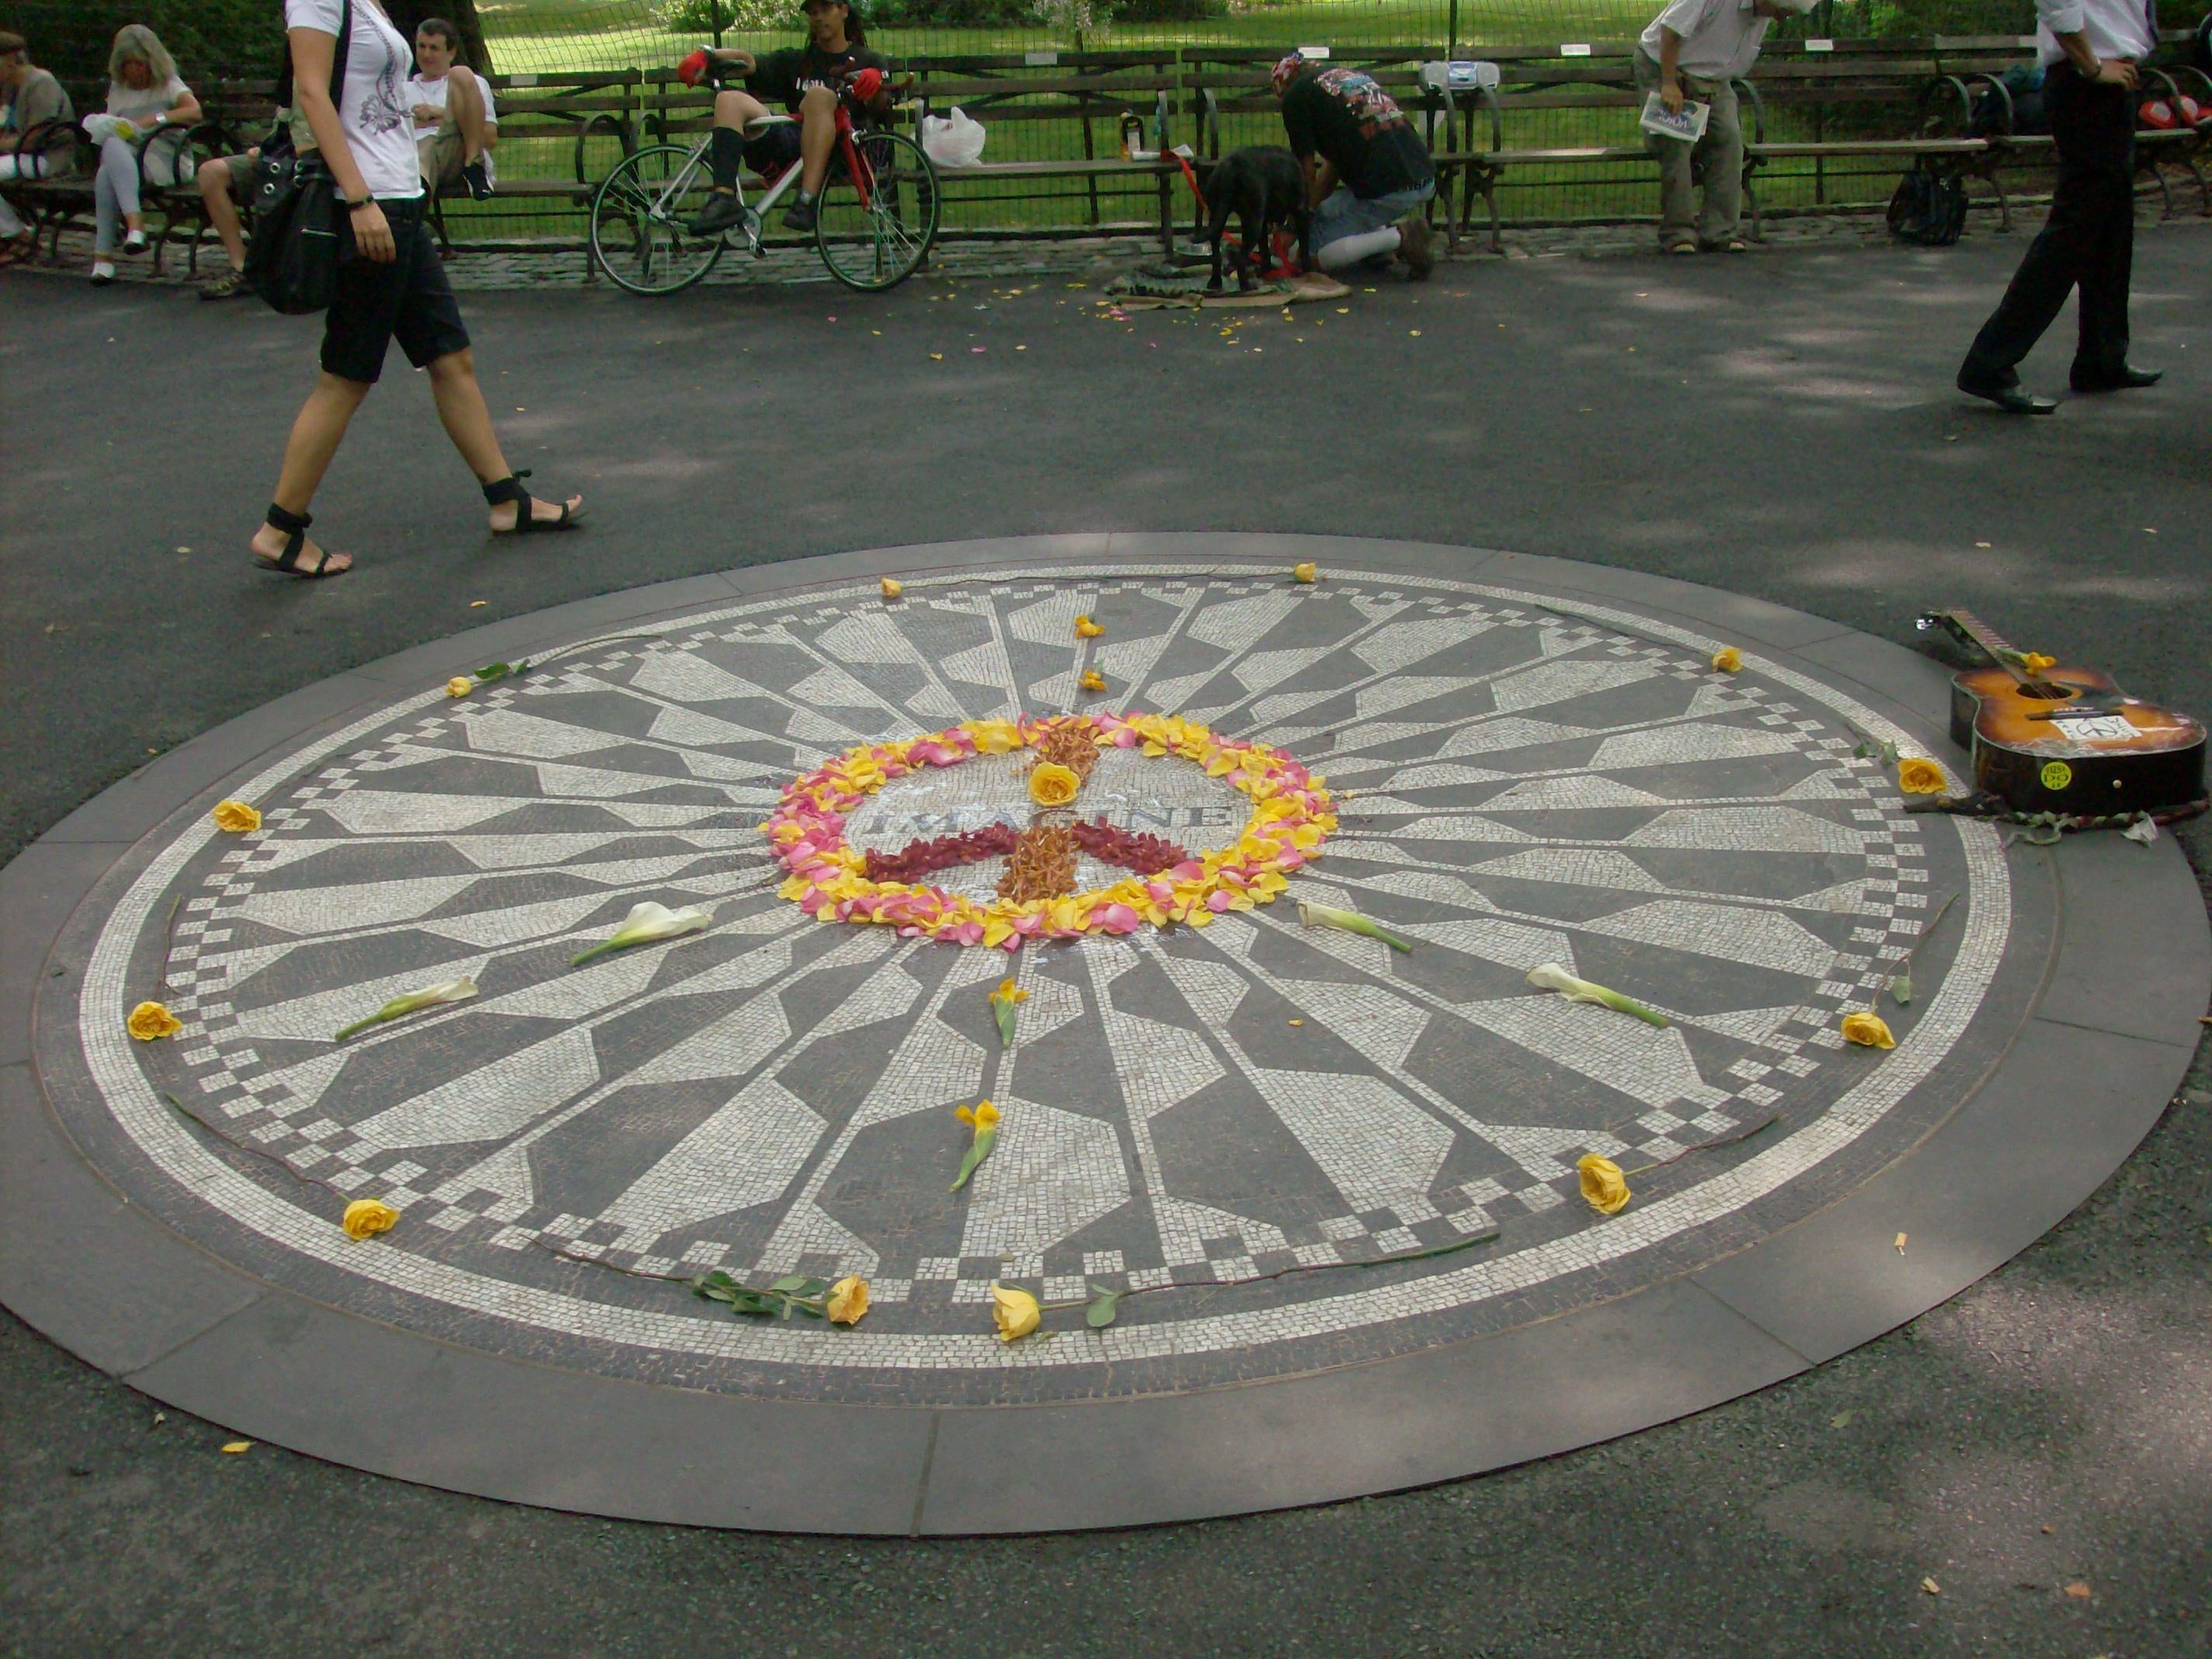 Vidrio en Strawberry Fields - monumento a John Lennon